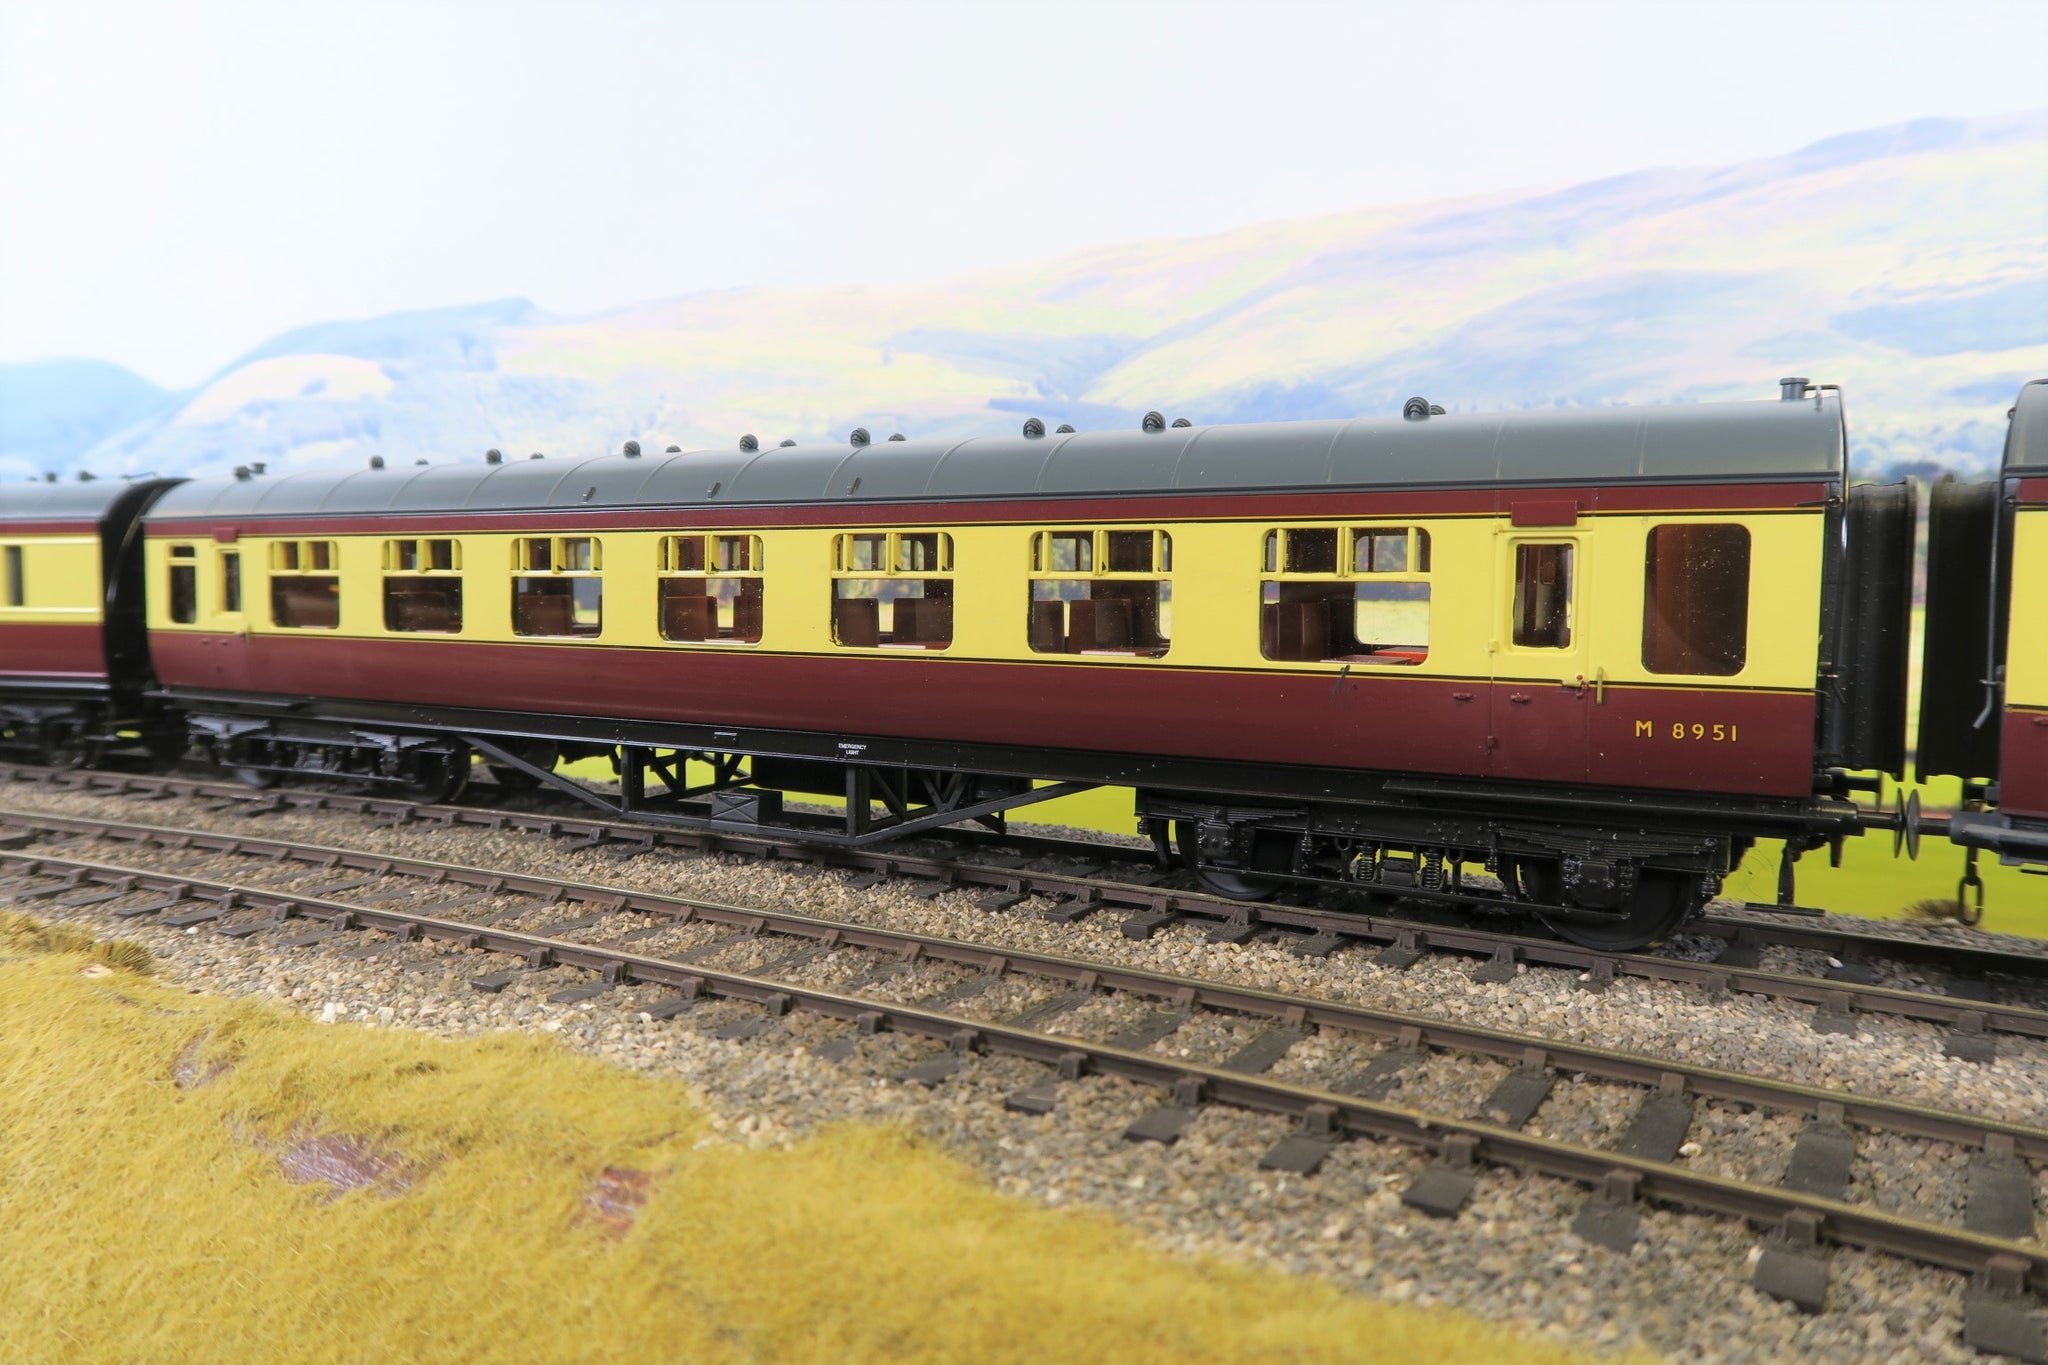 MTH 7mm Finescale O Gauge 20-60010-2 BR Blood and Custard Standard Passenger Car 'M8951'